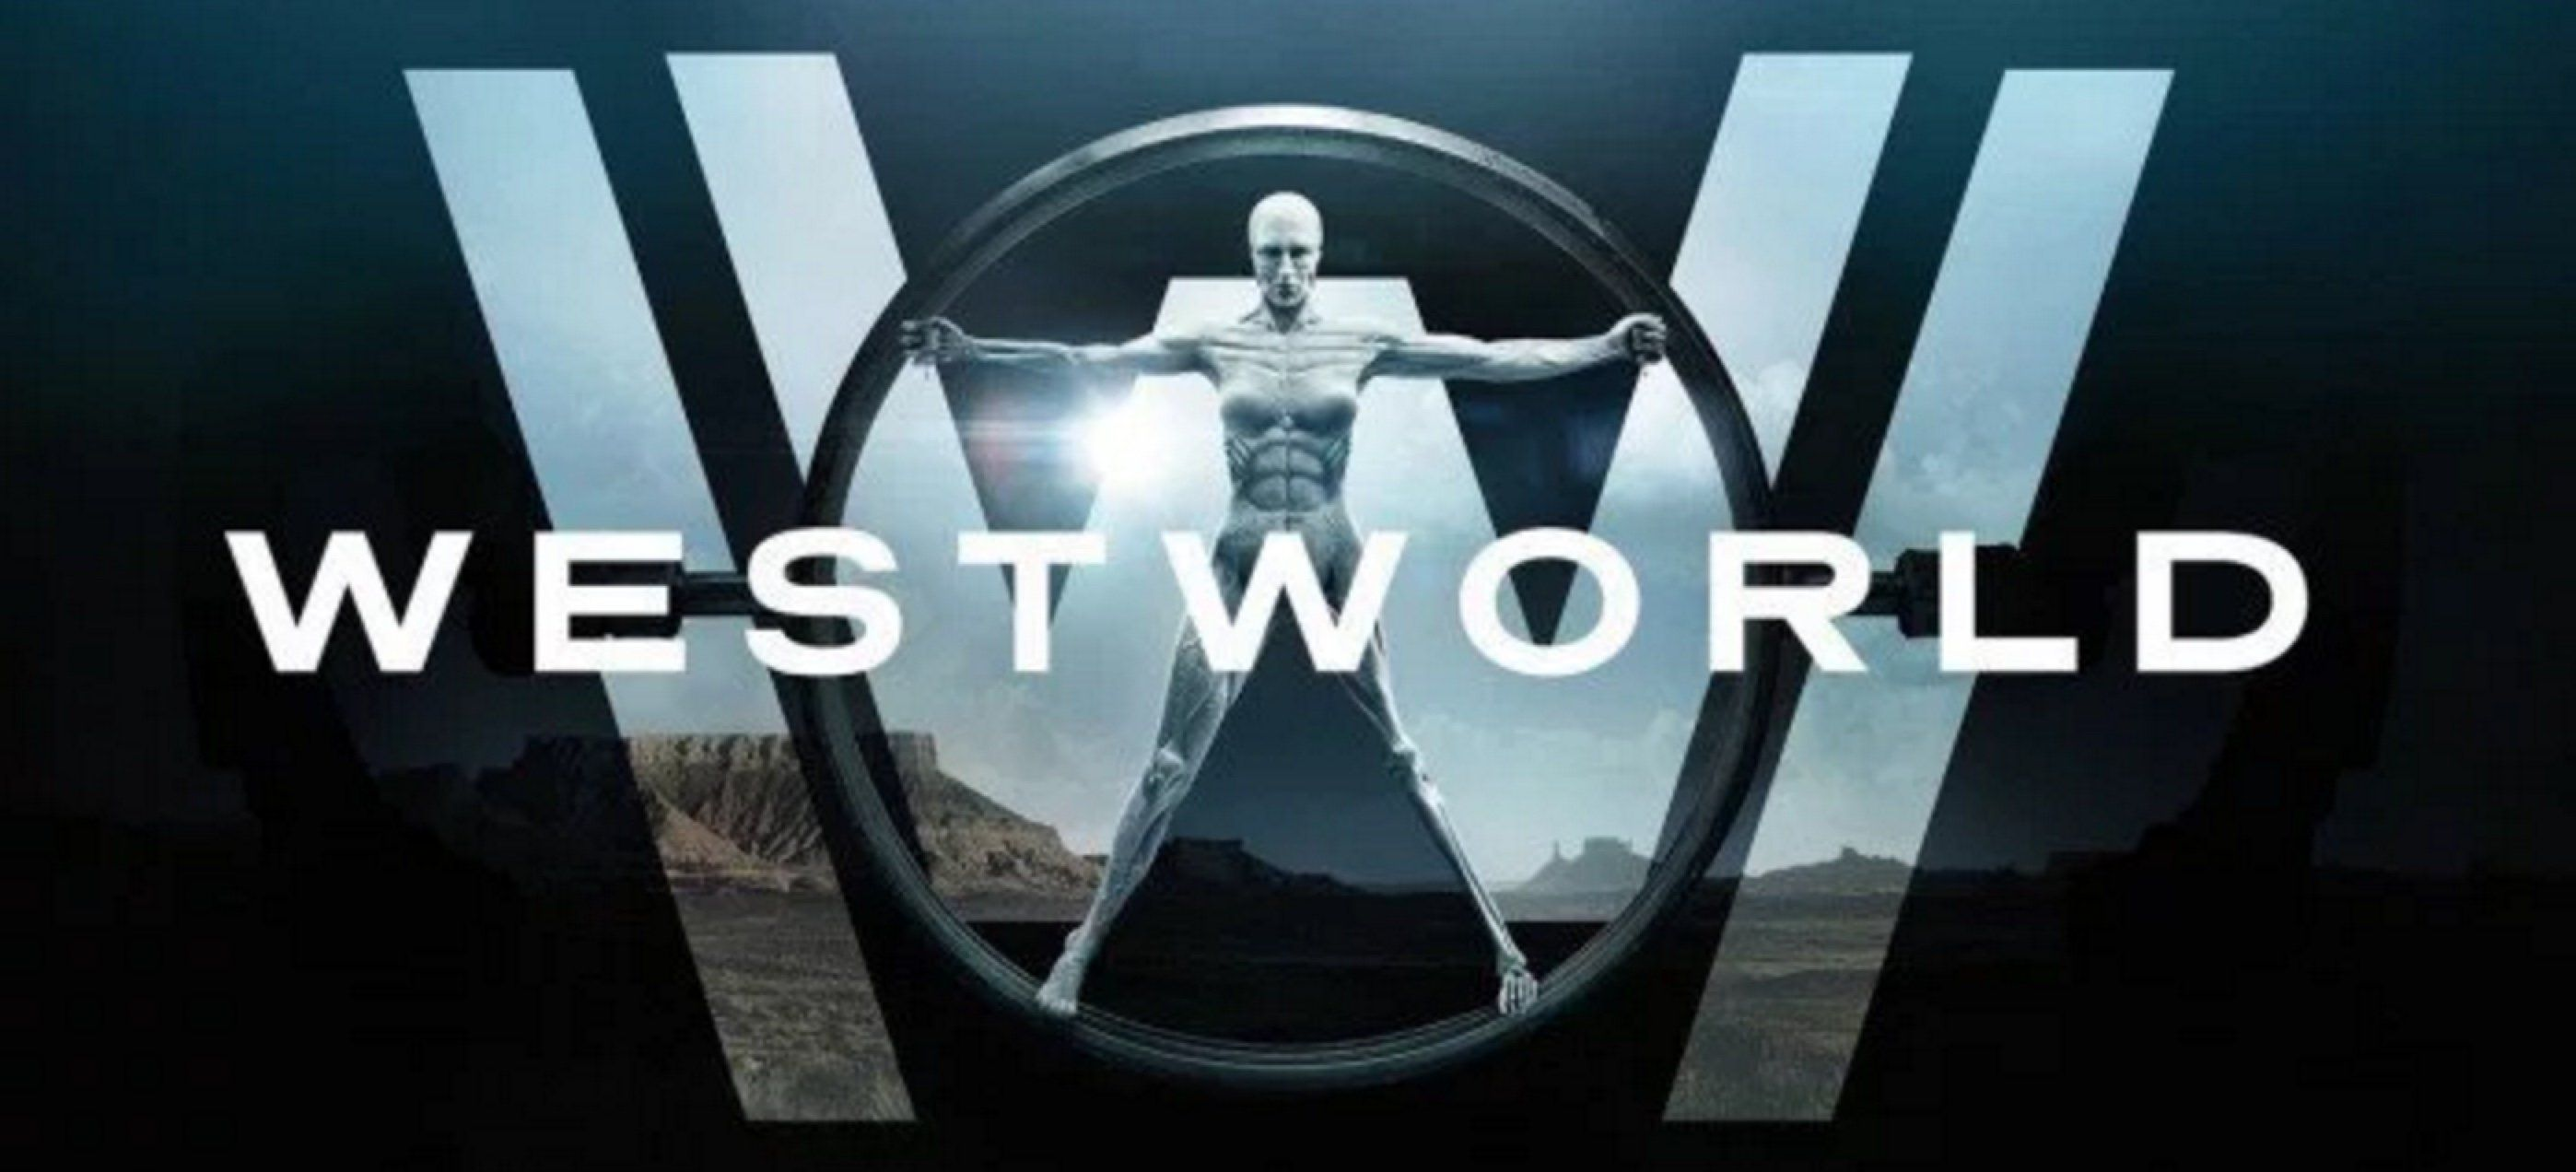 Westworld Season 1 DVD, Blu-Ray and Digital Download Arrives in ...